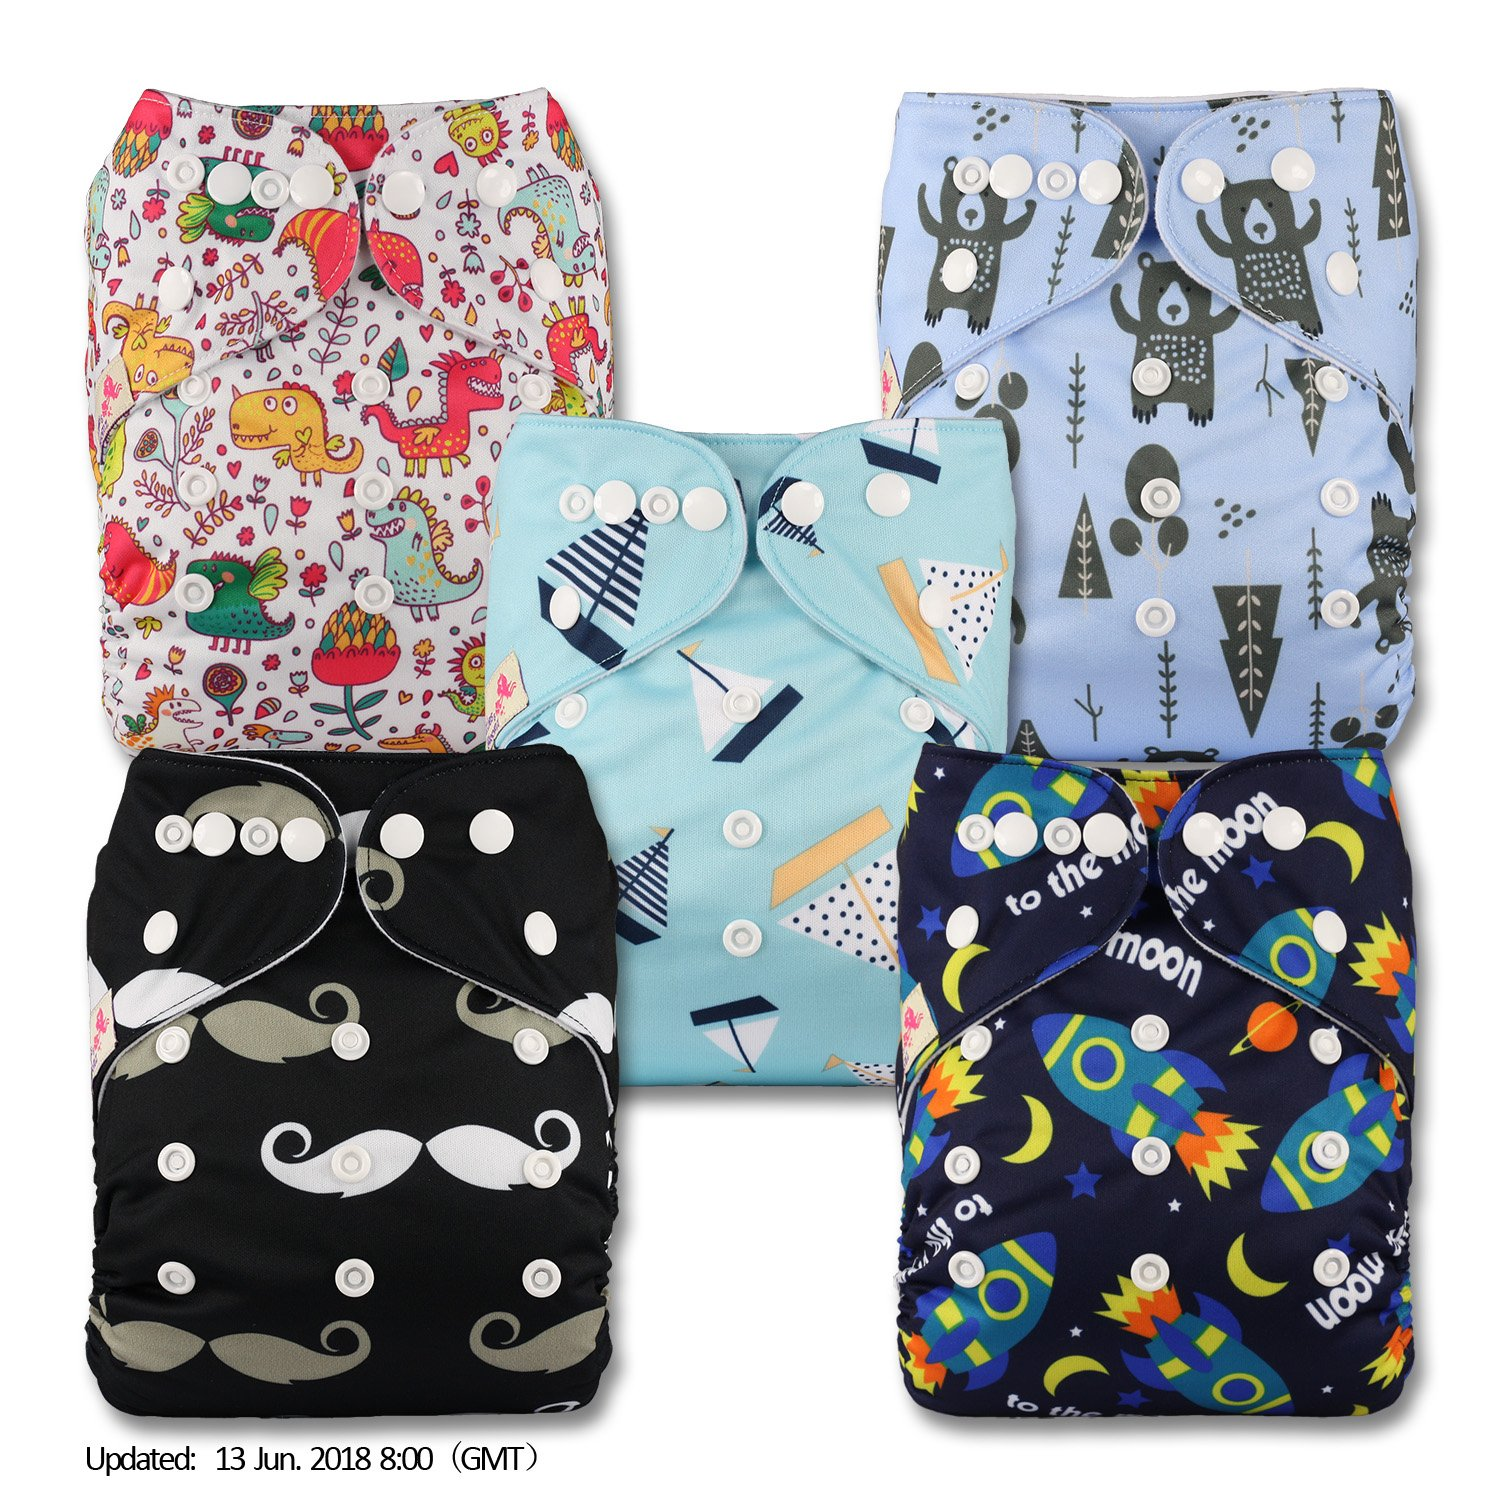 Littles /& Bloomz Reusable Pocket Cloth Nappy Fastener: Popper Patterns 519 Set of 5 with 10 Bamboo Charcoal Inserts